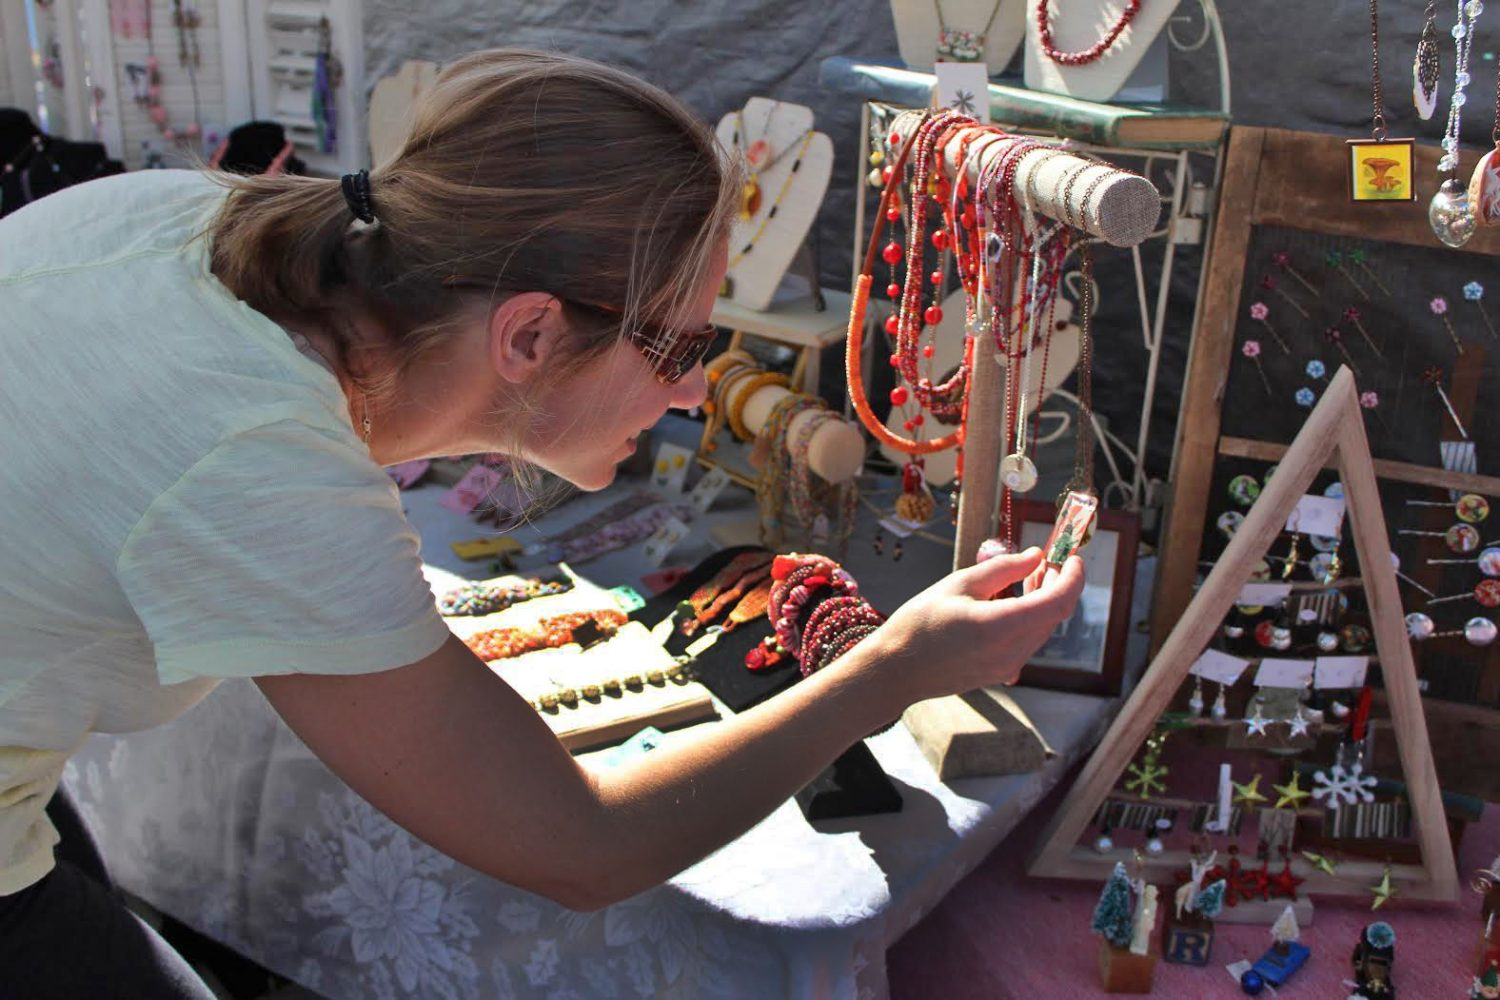 Megan Saillant, an attendee of the GLAM Craft Show, browses for jewelry at one of the booths. Saillant purchased a wooden animal for her daughter. (Photo by Sophie Smadbeck/WUFT News)